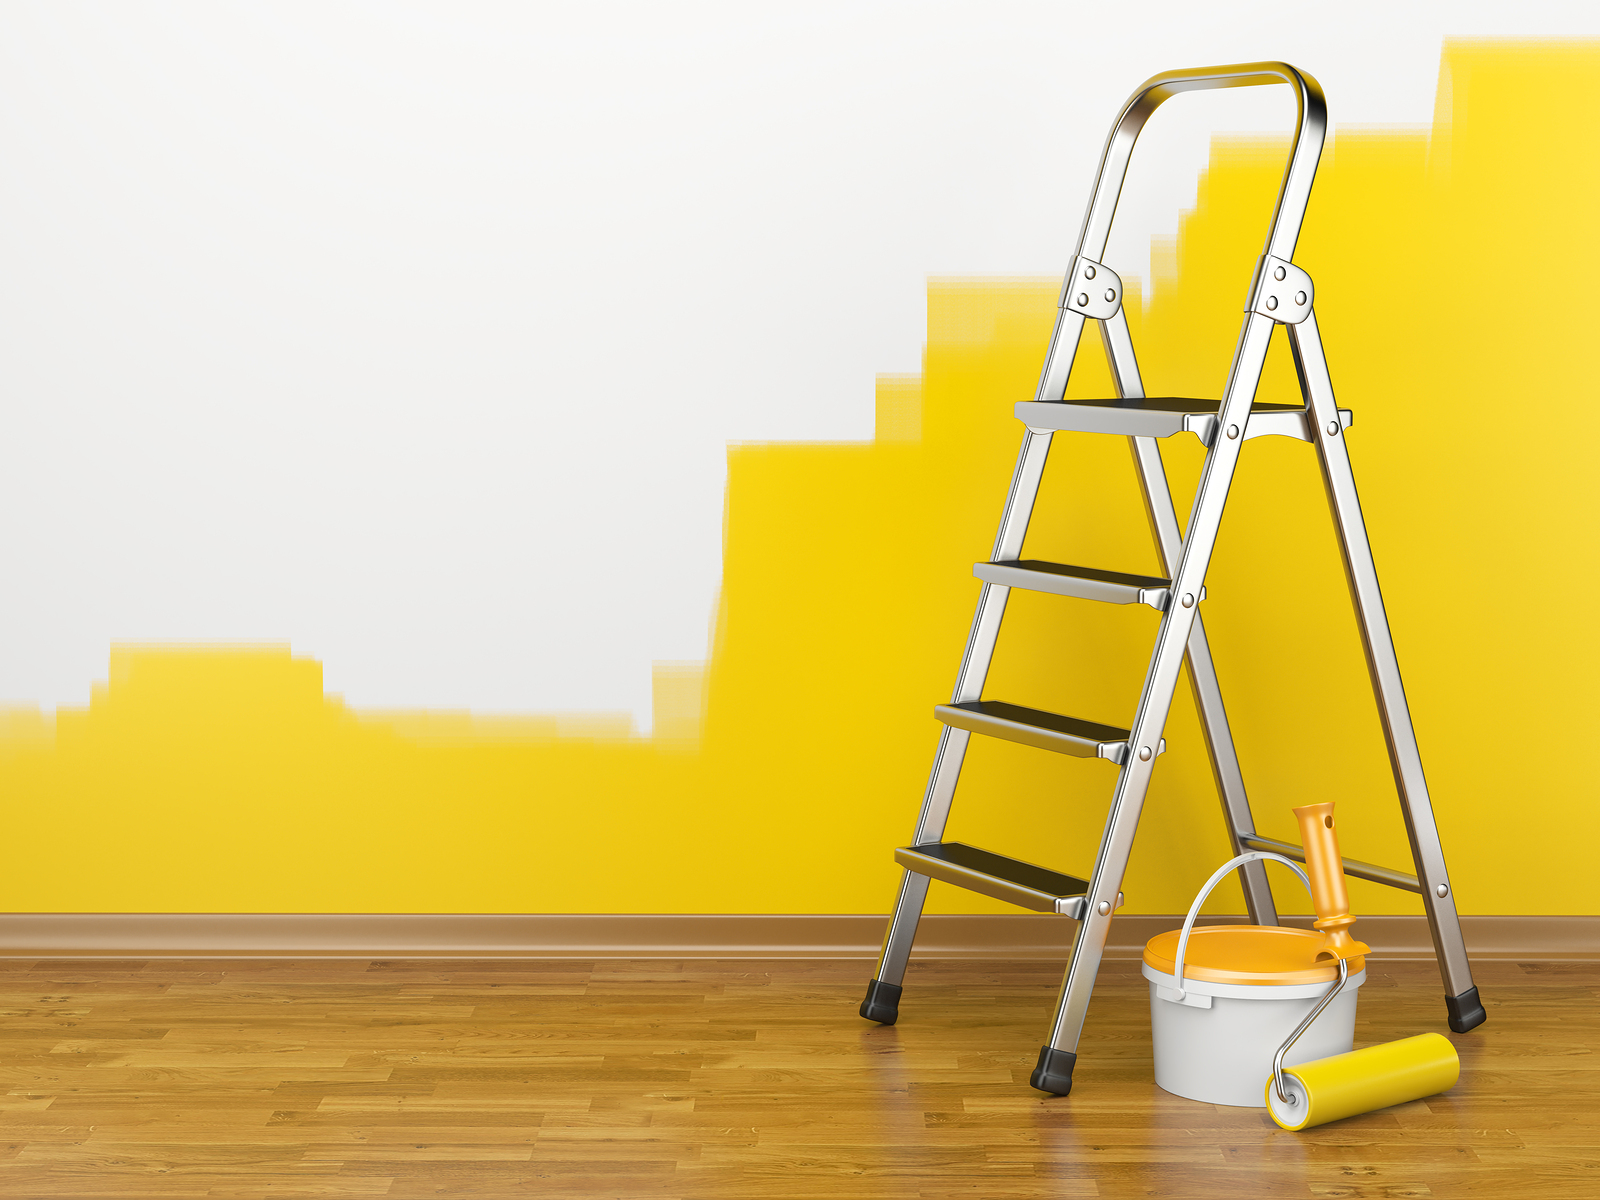 Home Improvement. Ladder paint can and paint roller near a wall of yellow colour. 3d illustration